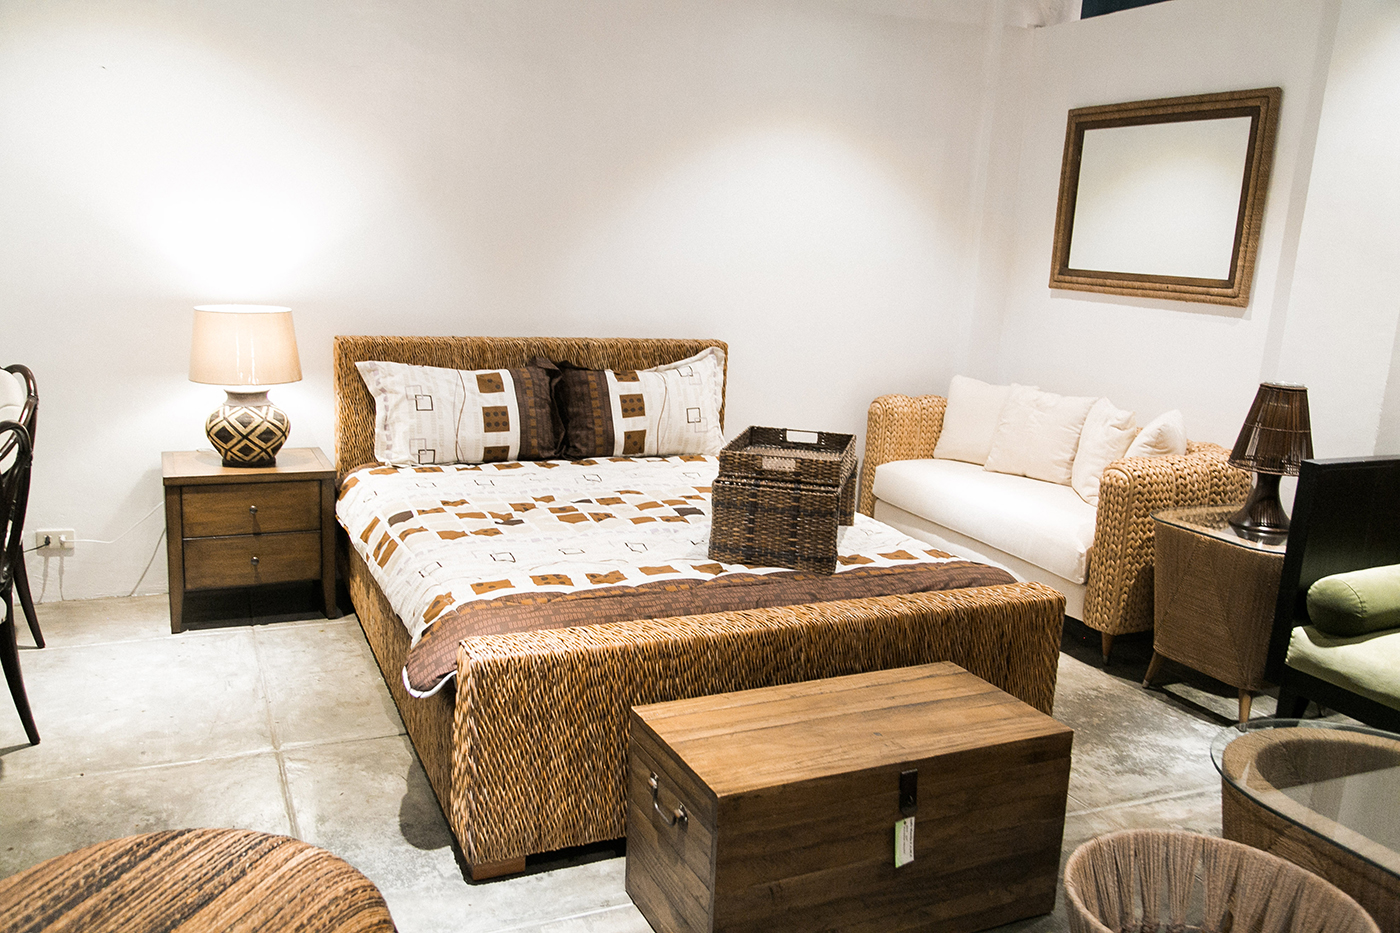 Deco Central By Philexport # Muebles Pampanga